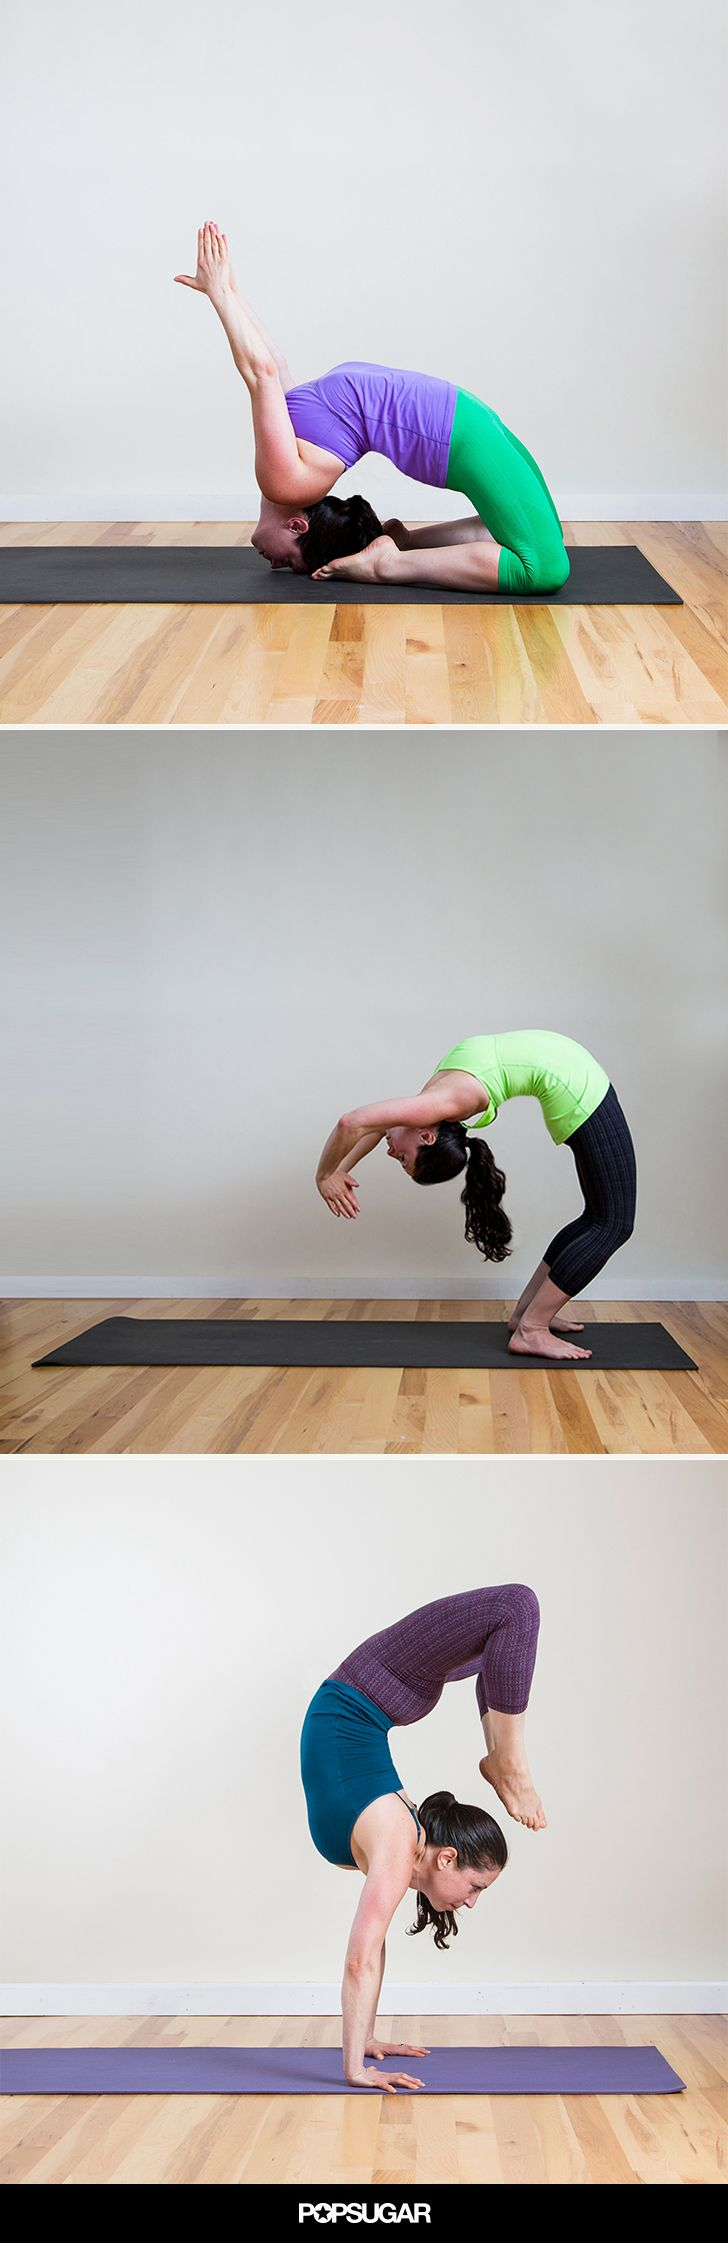 These 25 yoga poses are almost otherworldly — the human body is capable of so much!